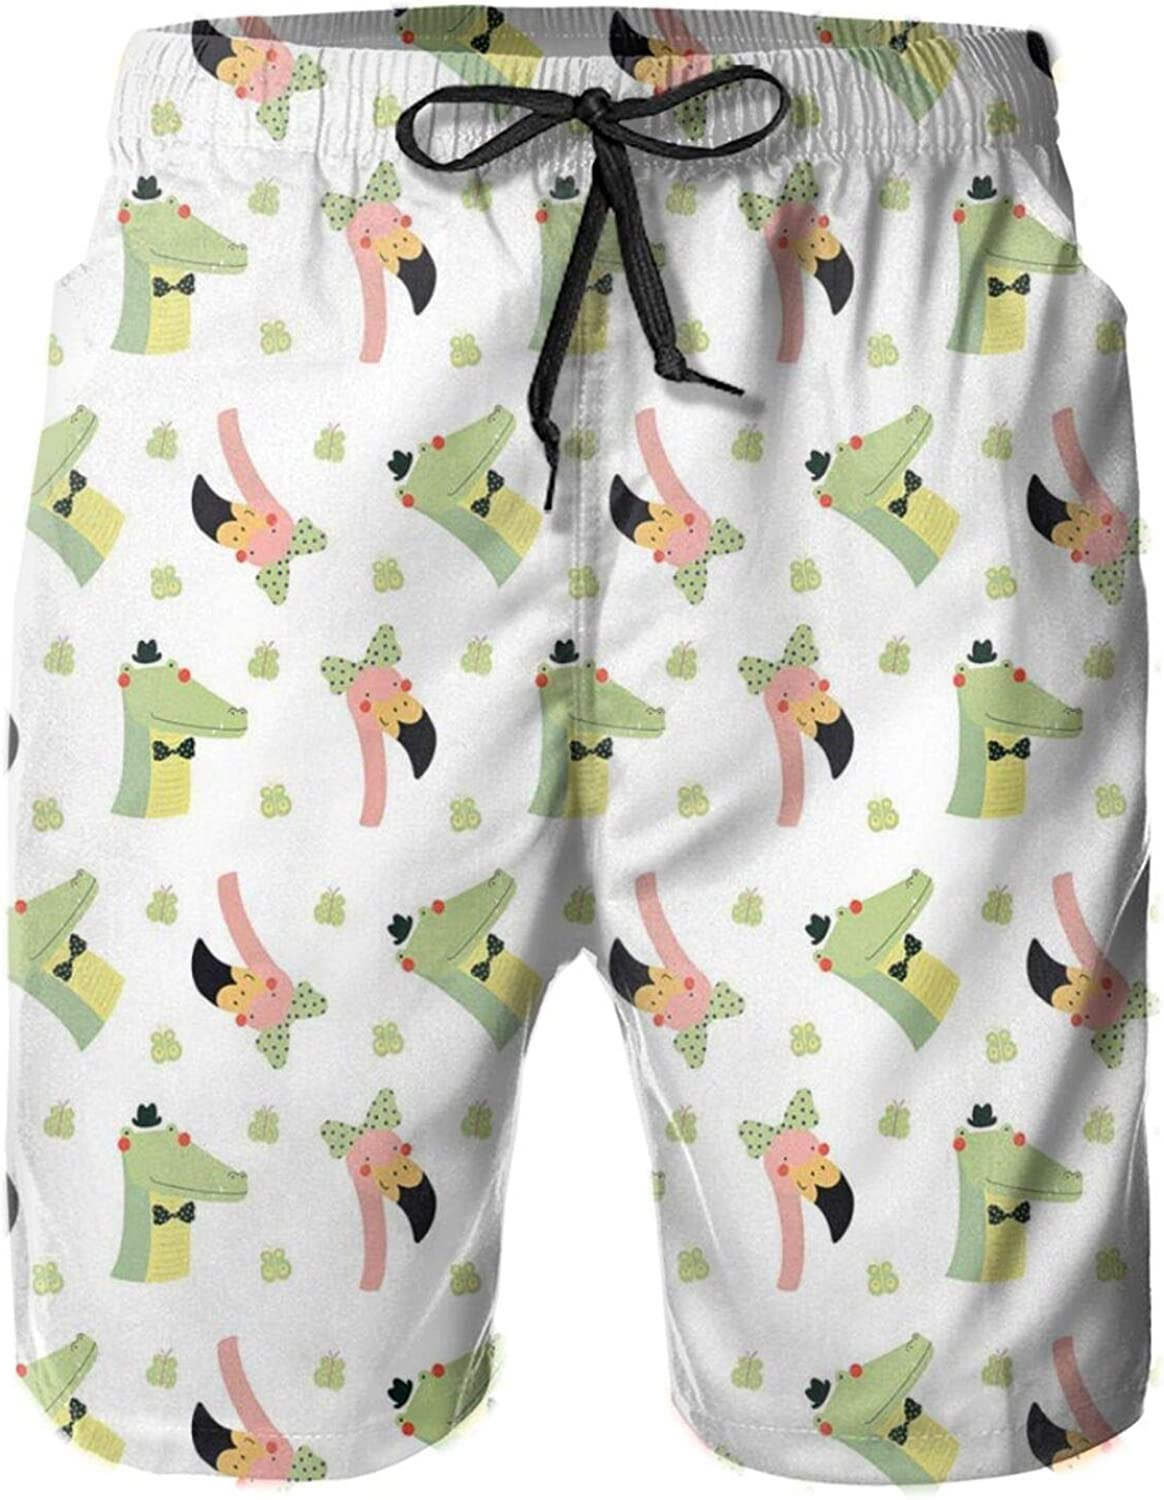 Crocodile and Flamingo Drawing with Polka Dots Bow Tie Butterflies Mens Swim Trucks Shorts with Mesh Lining,L